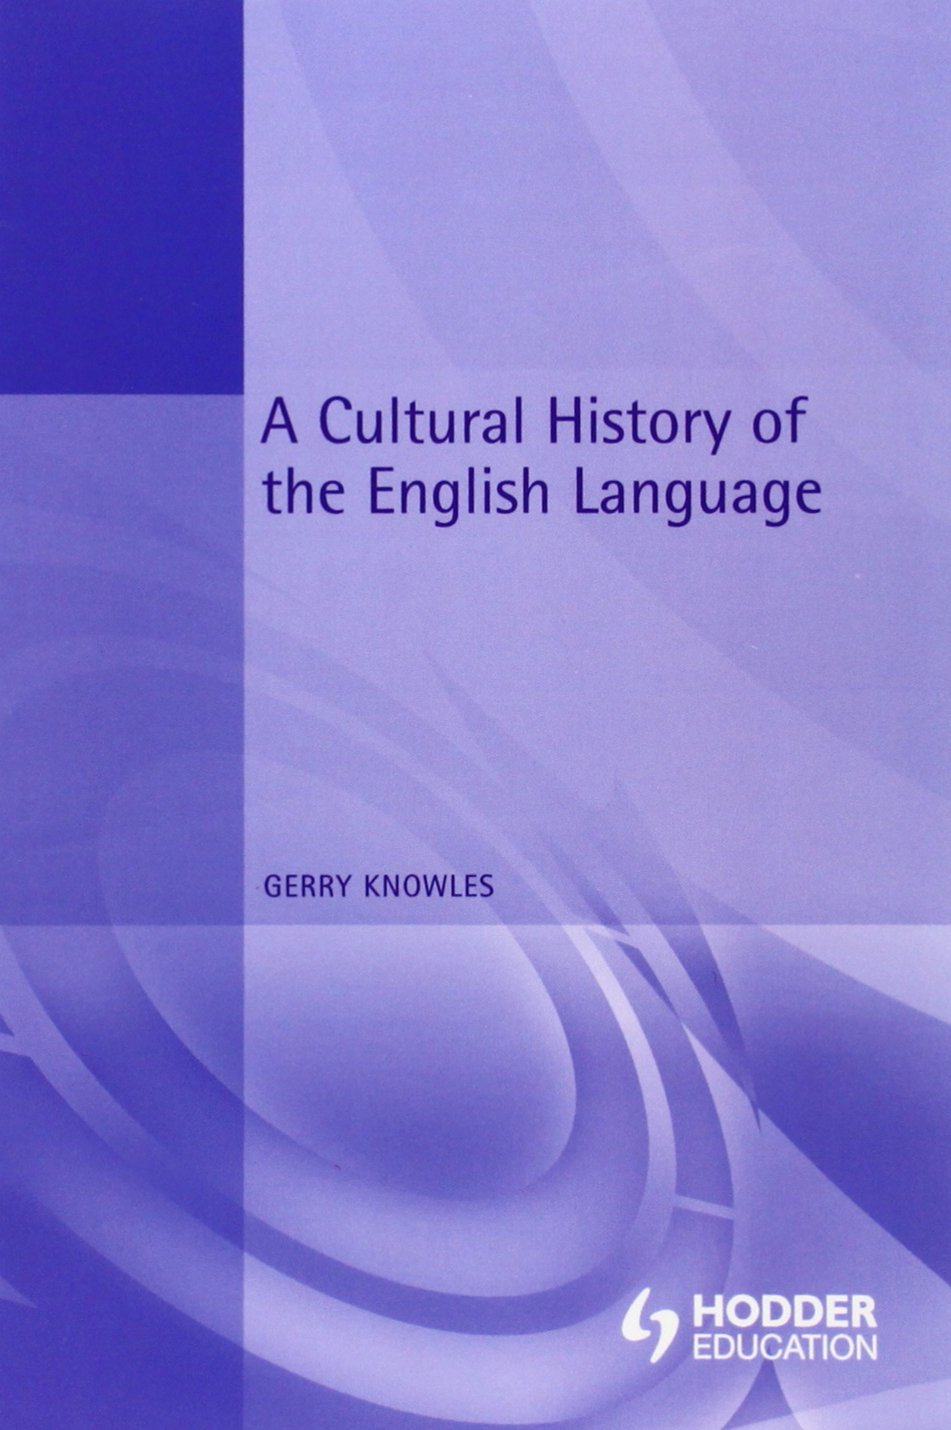 A Cultural History of the English Language (The English Language Series) free download